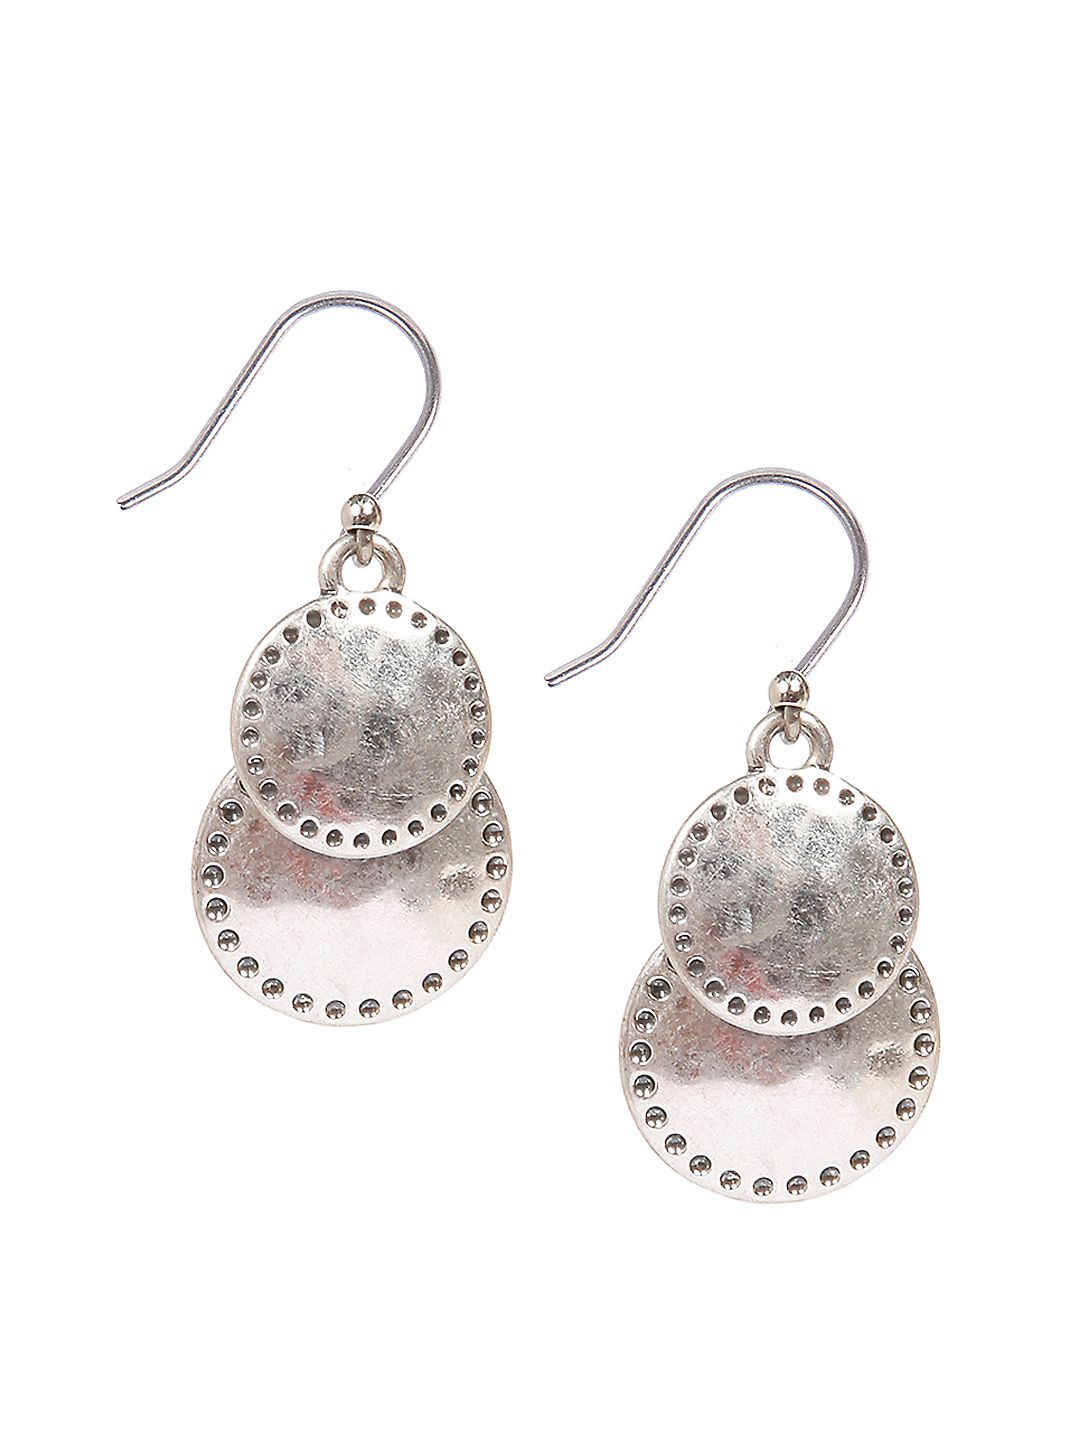 Silvertone Double Disc Drop Earrings